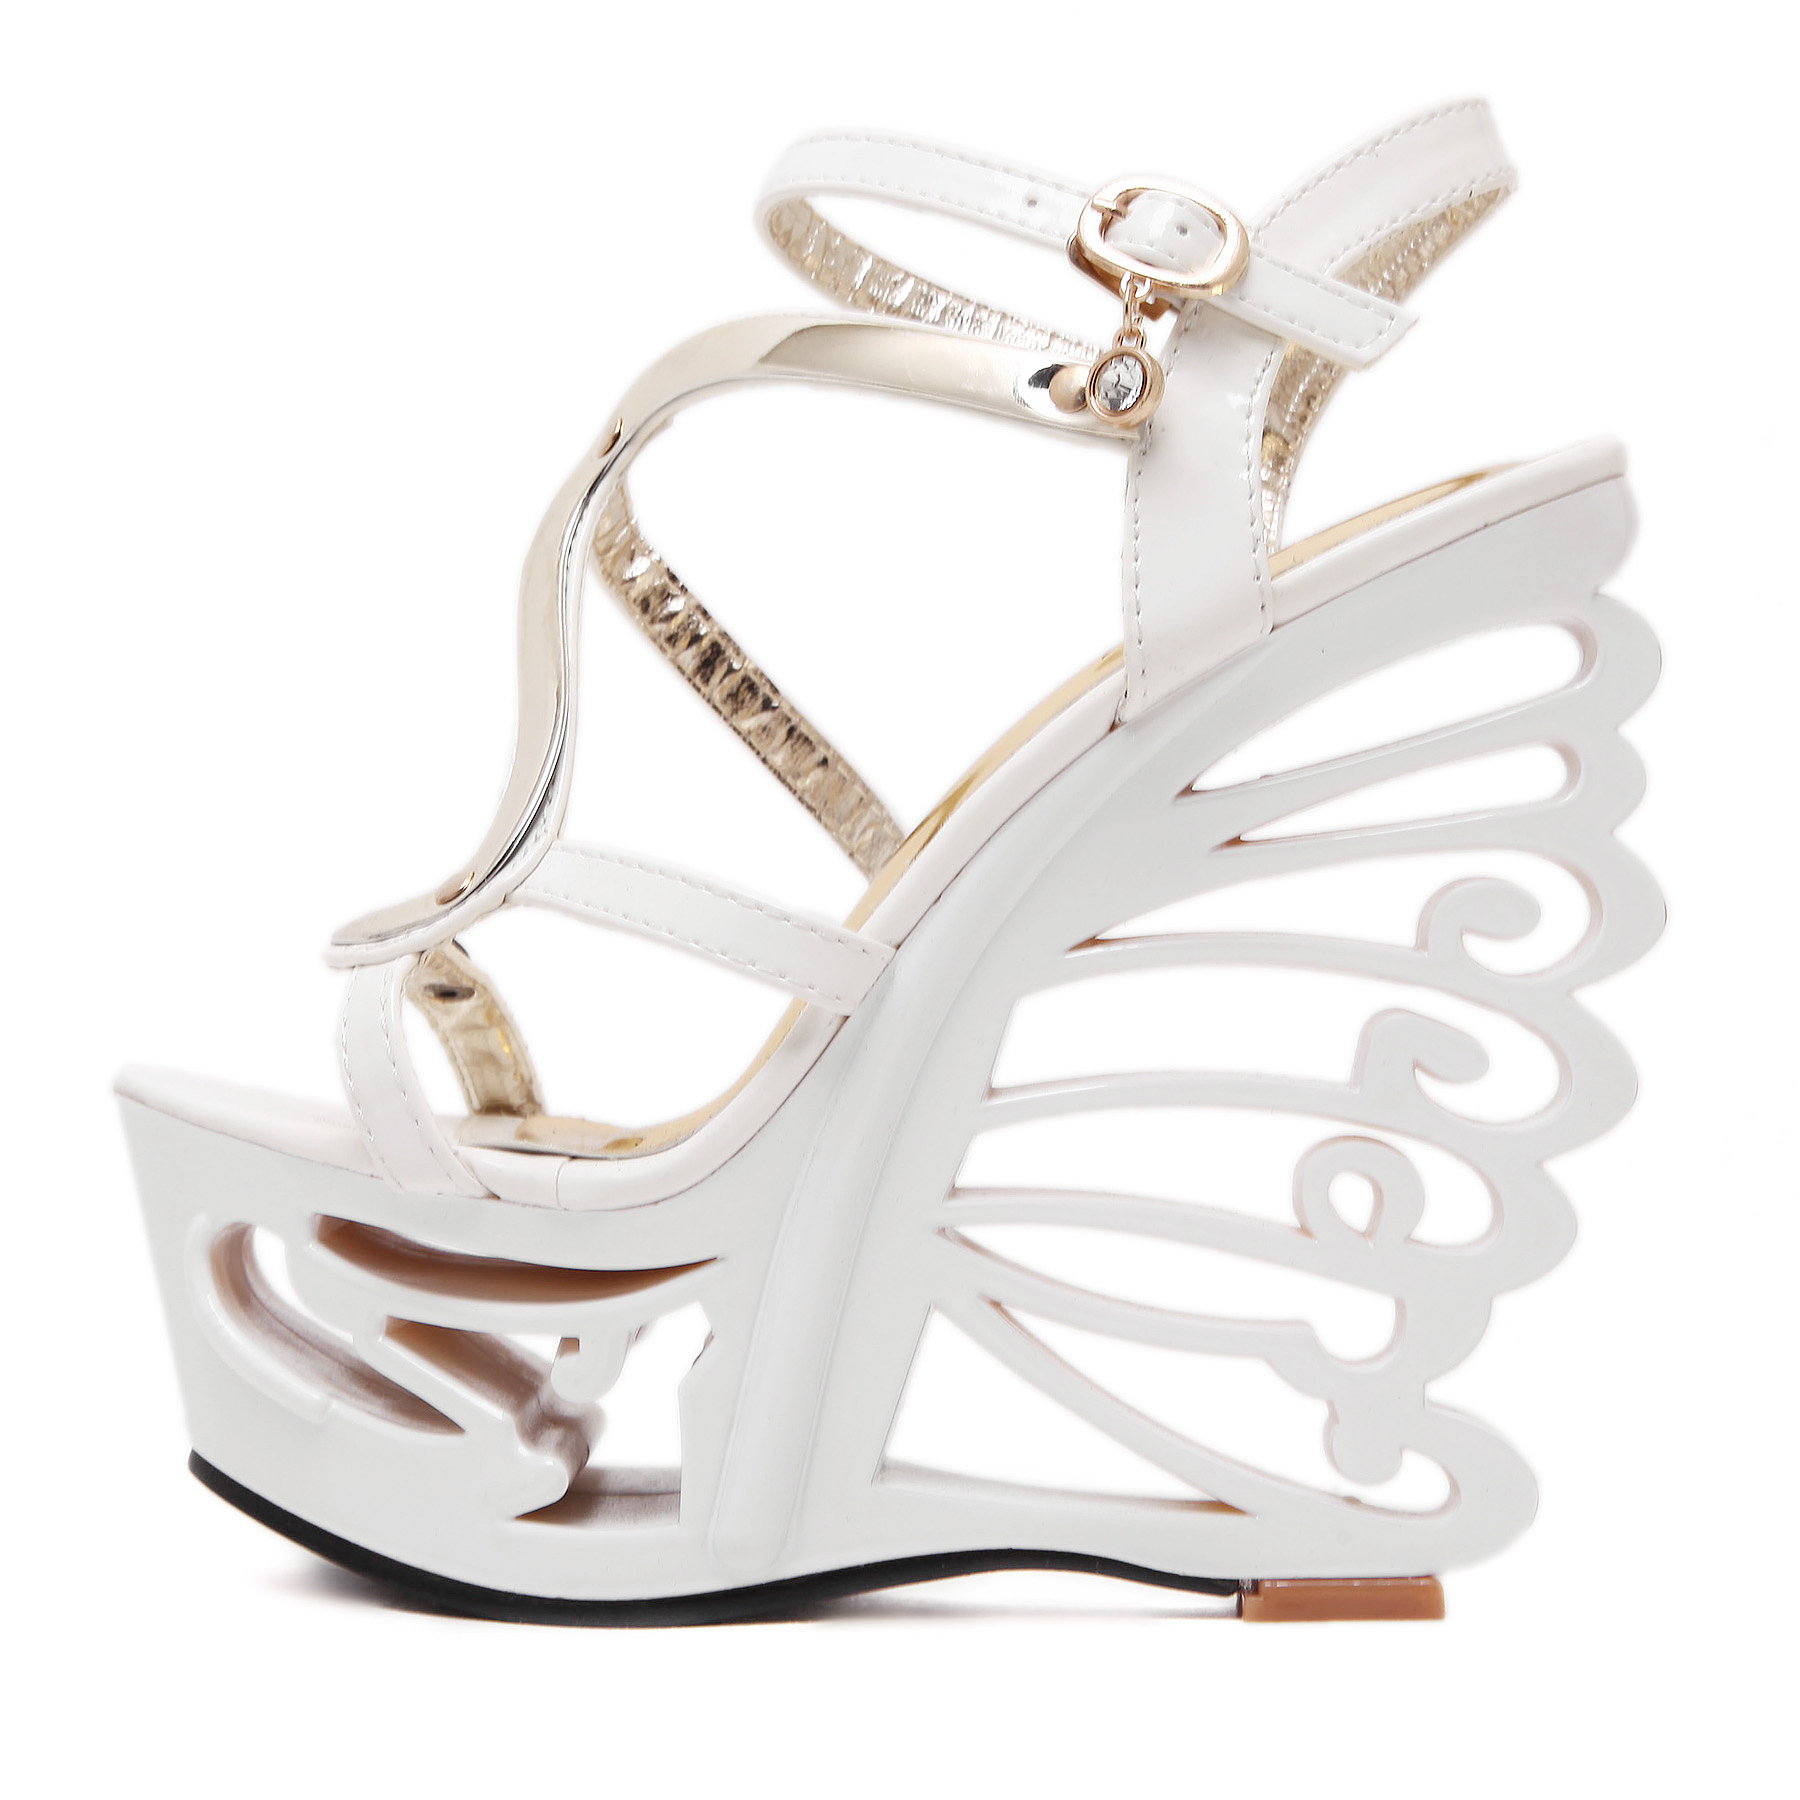 eec2c98fa87 US  49 - Summer platform wedges sandals shoes for woman high heels 15cm  white black evening night club sexy party shoes - www.ardenfurtado.com